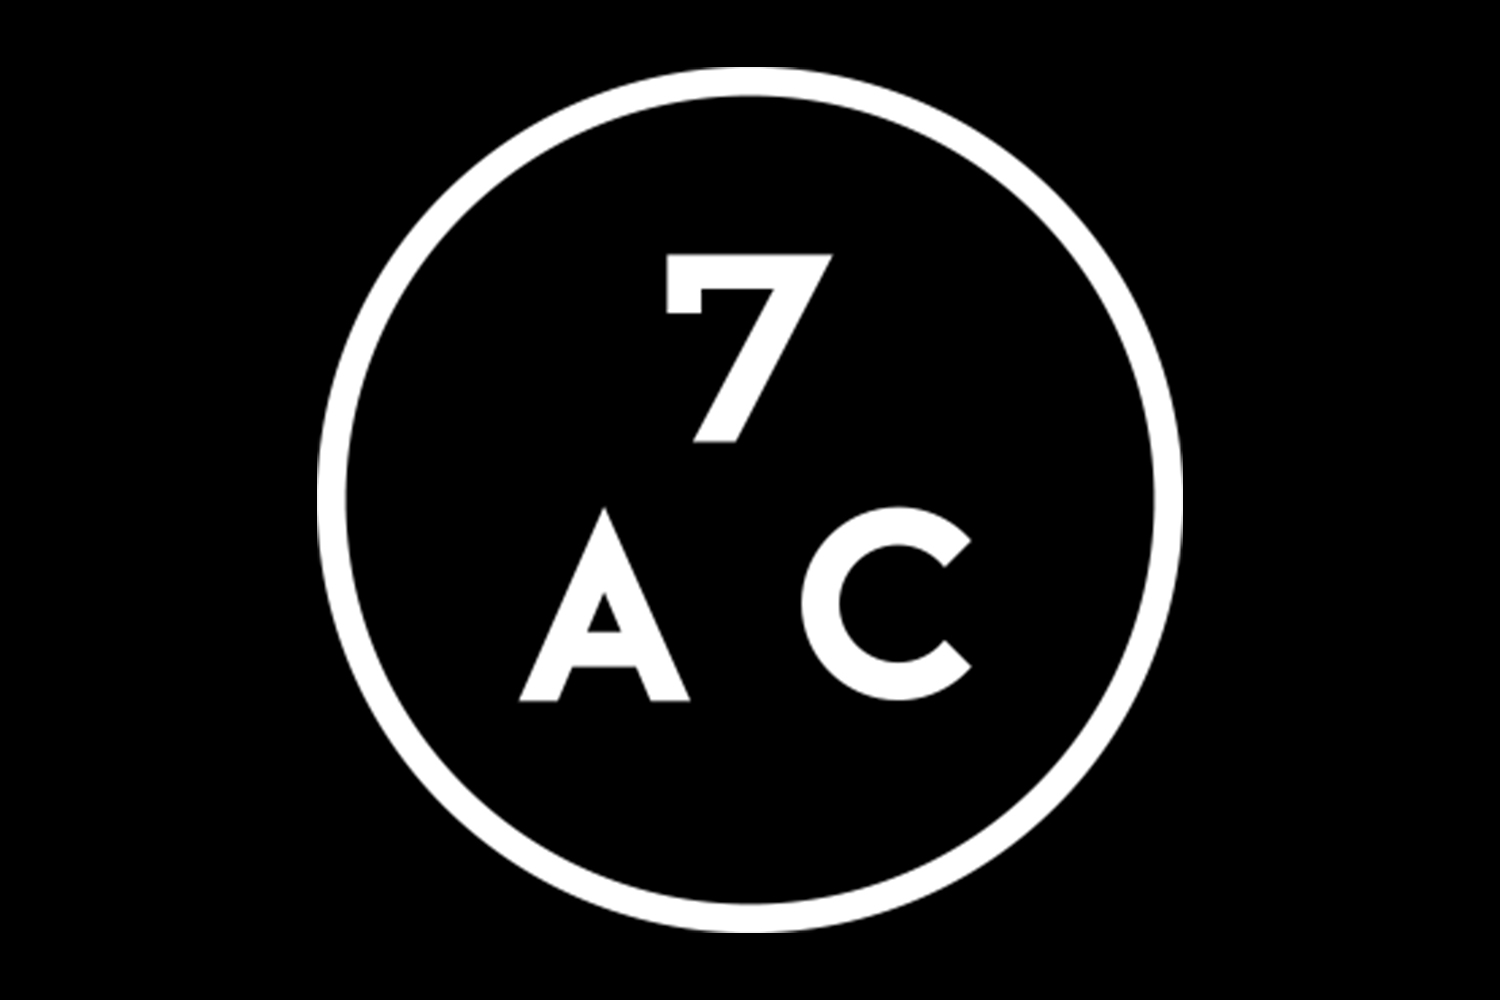 cannabis agency 7-acres